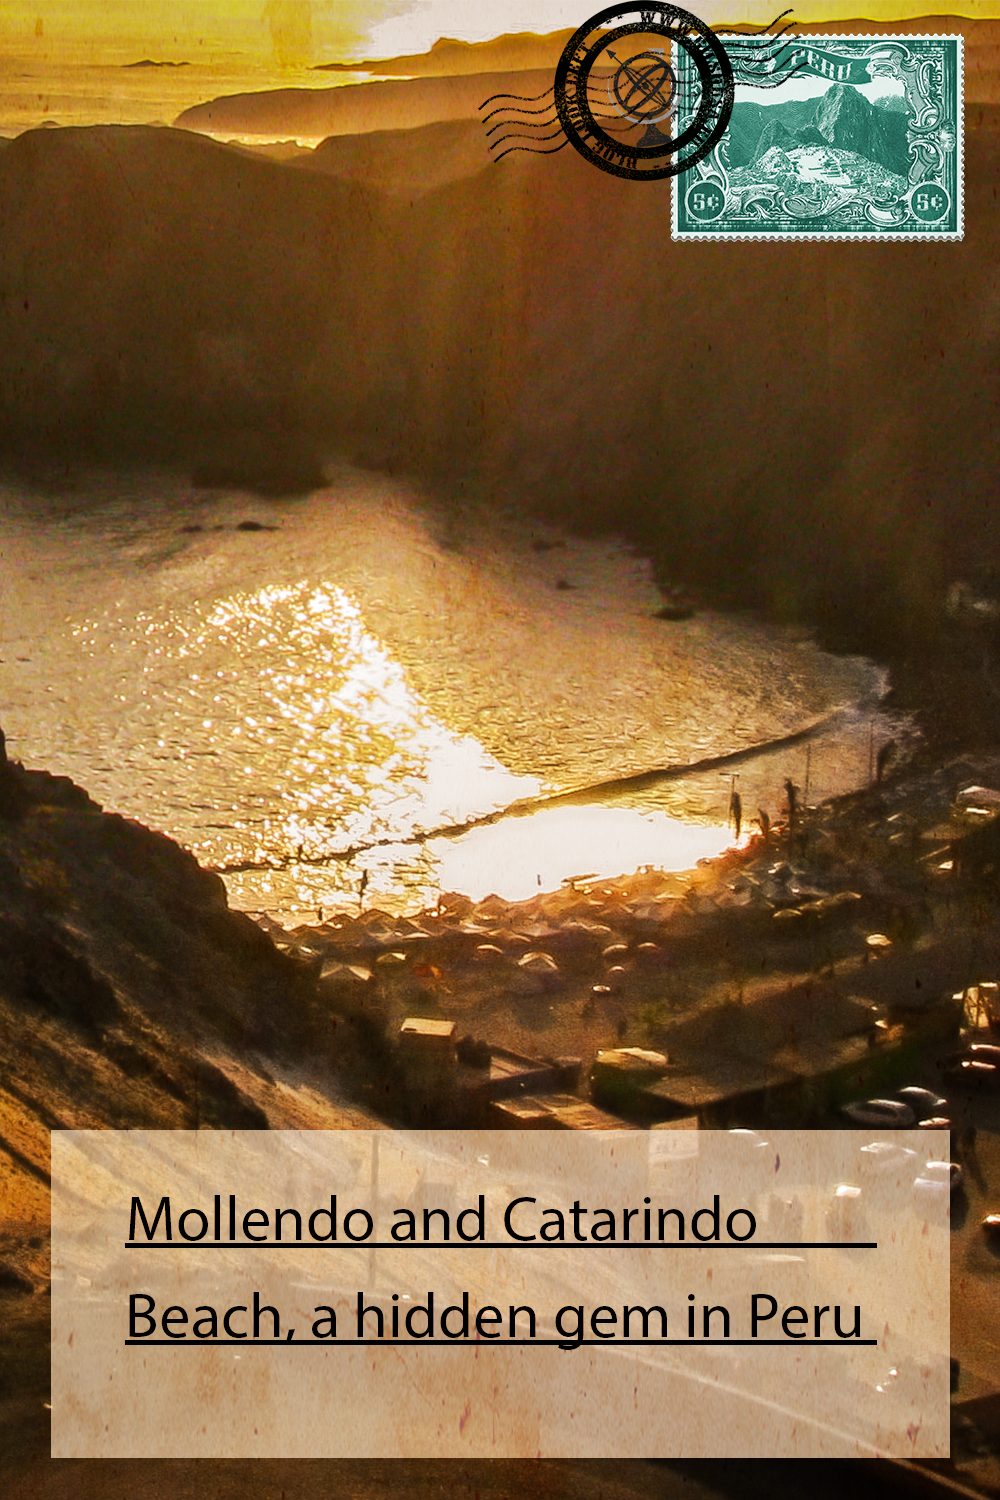 Mollendo and Catarindo Beach, a hidden gem in Peru